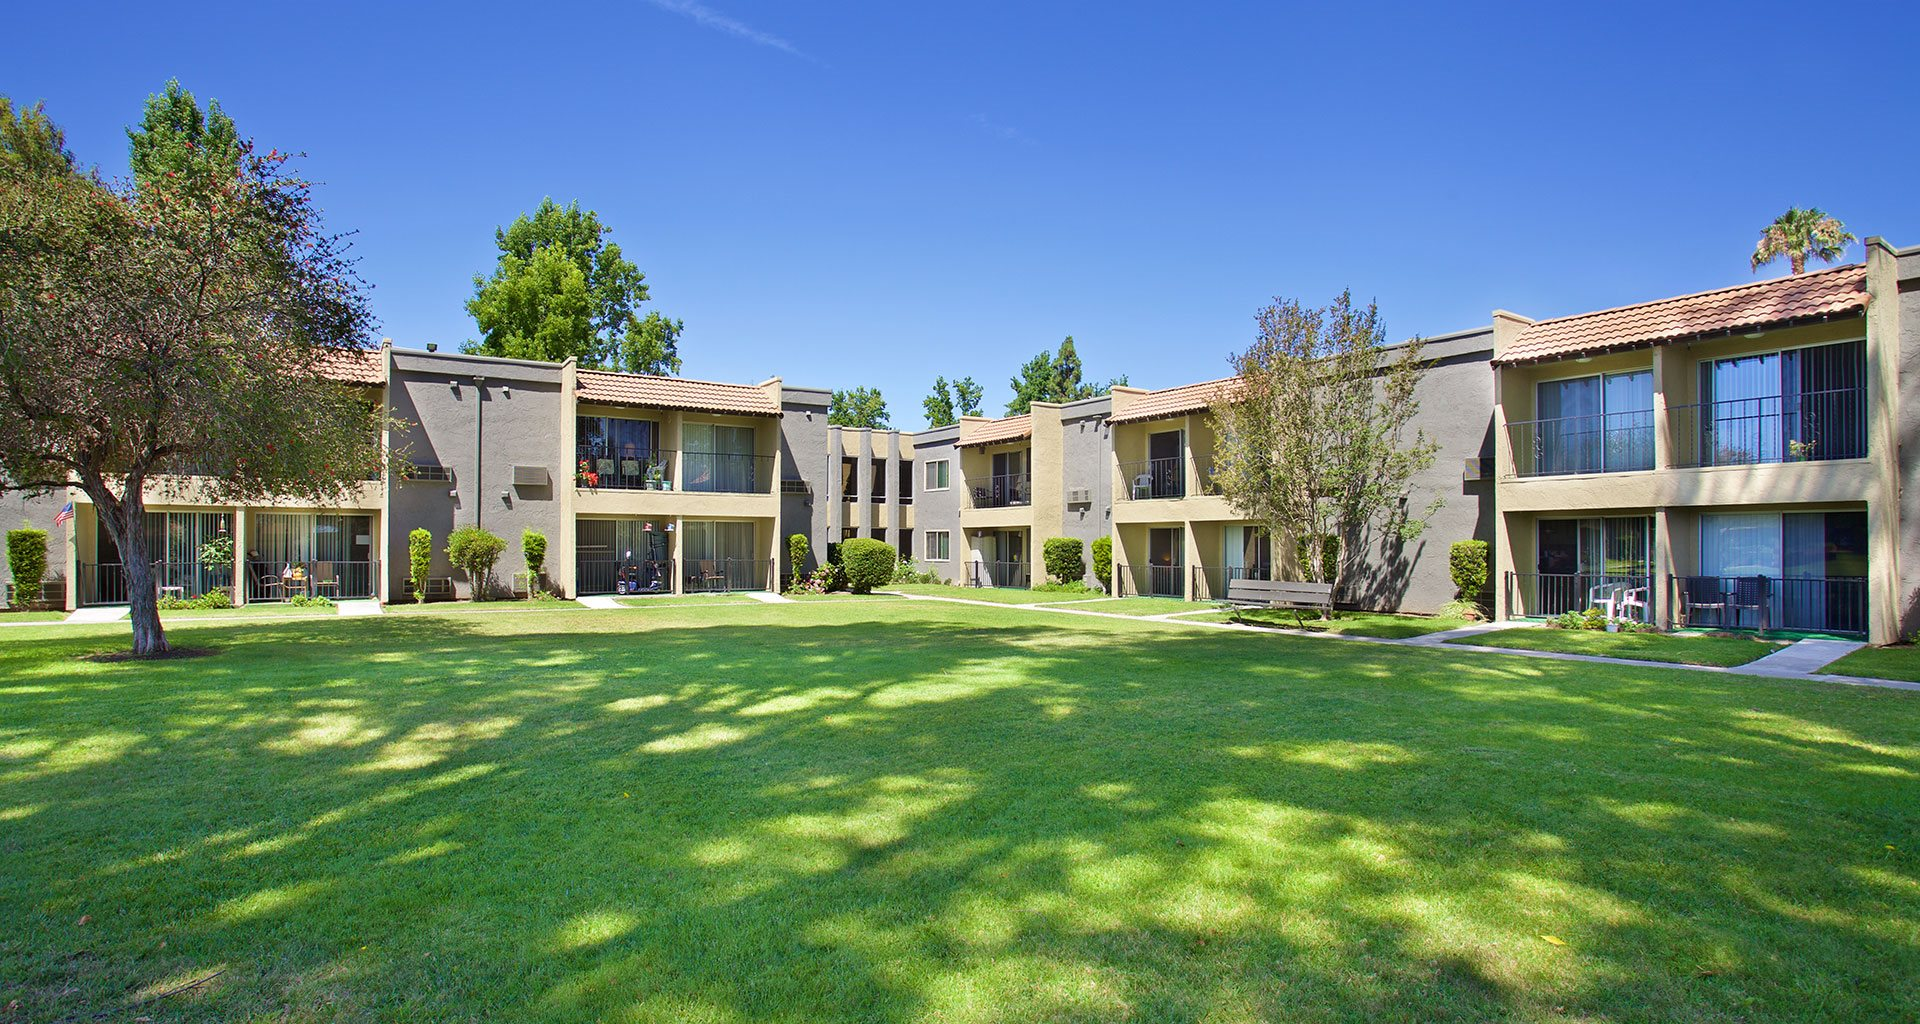 Lush Green Outdoor Spaces at Pacifica Senior Living Escondido, Escondido, 92027